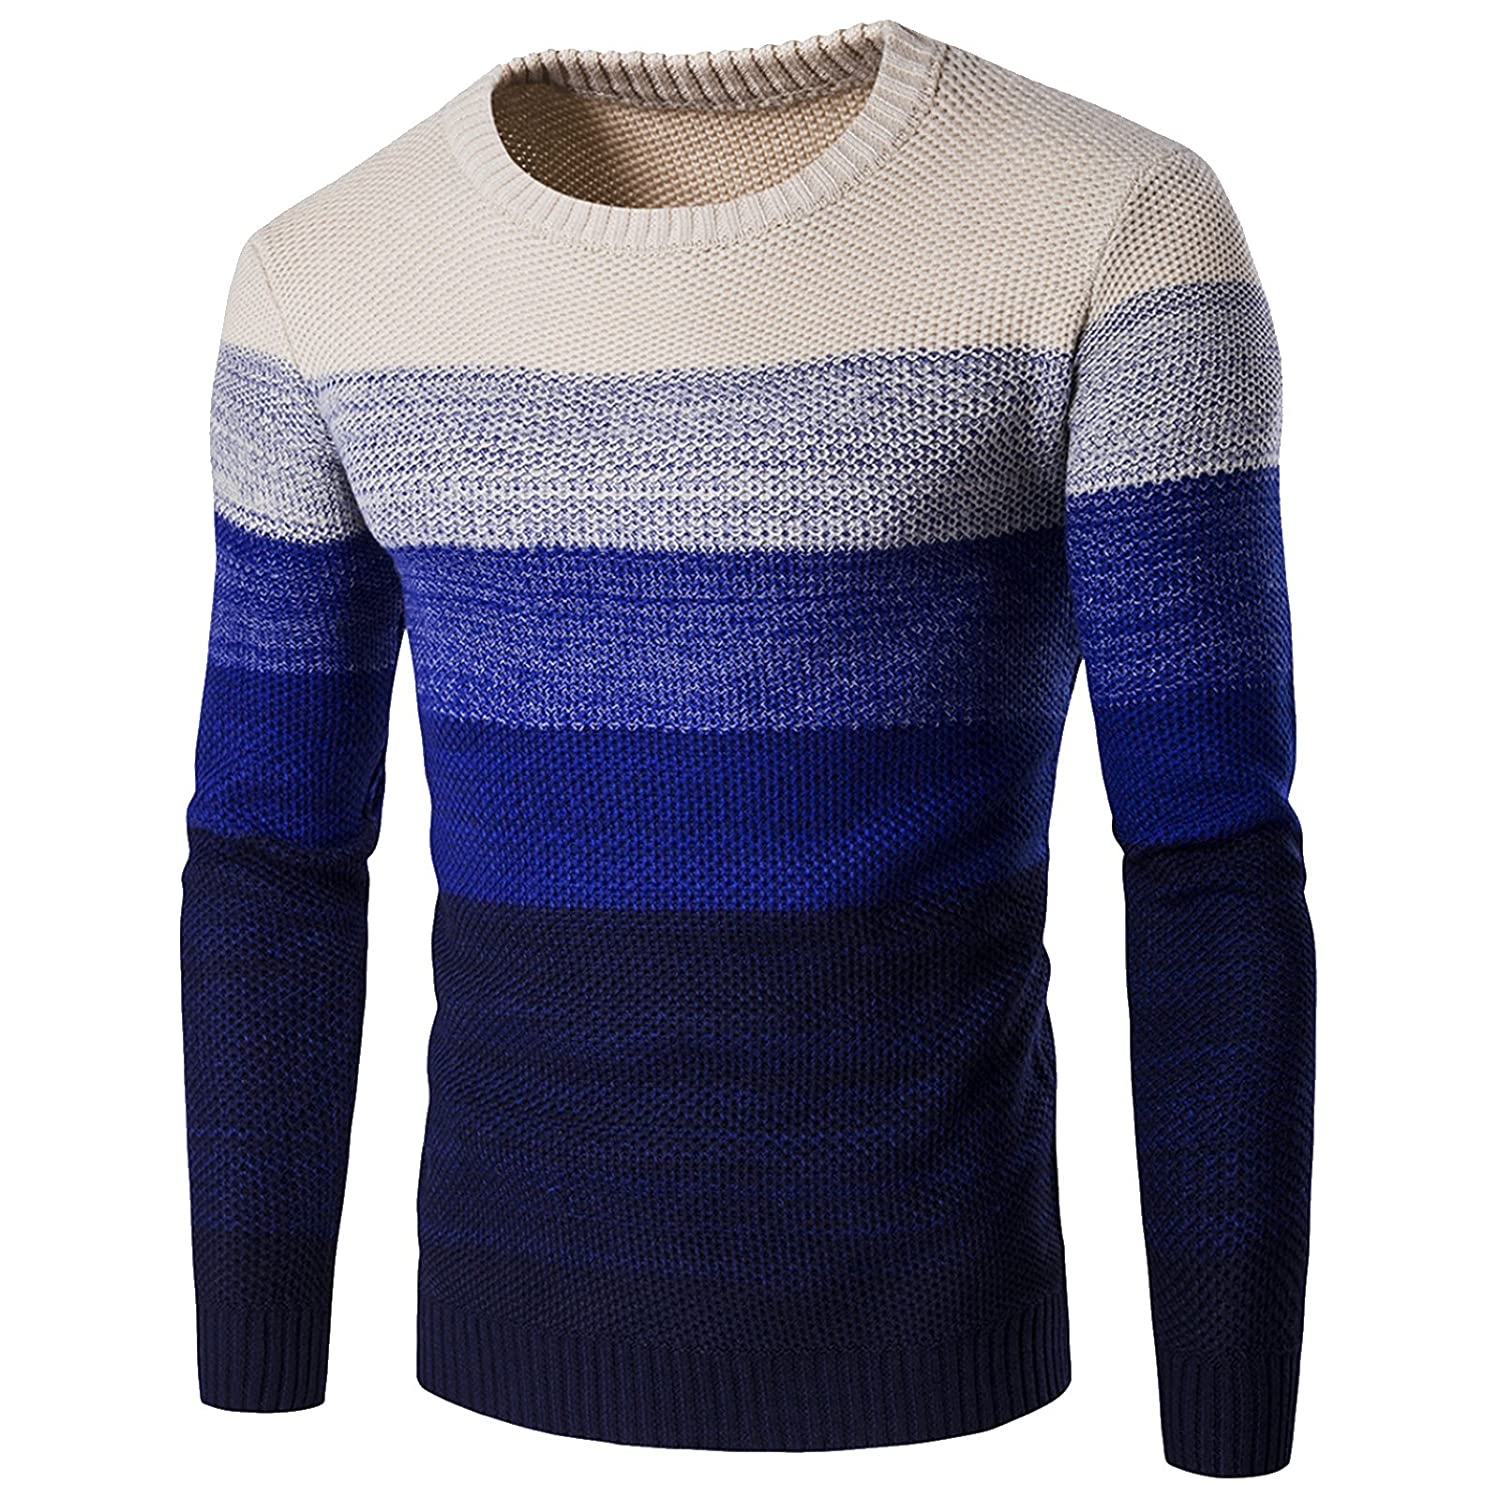 WSLCN Mens Chic Warm Coton Sweater Gradient Color Pullover Thick Knitting Jumper AW-Y253